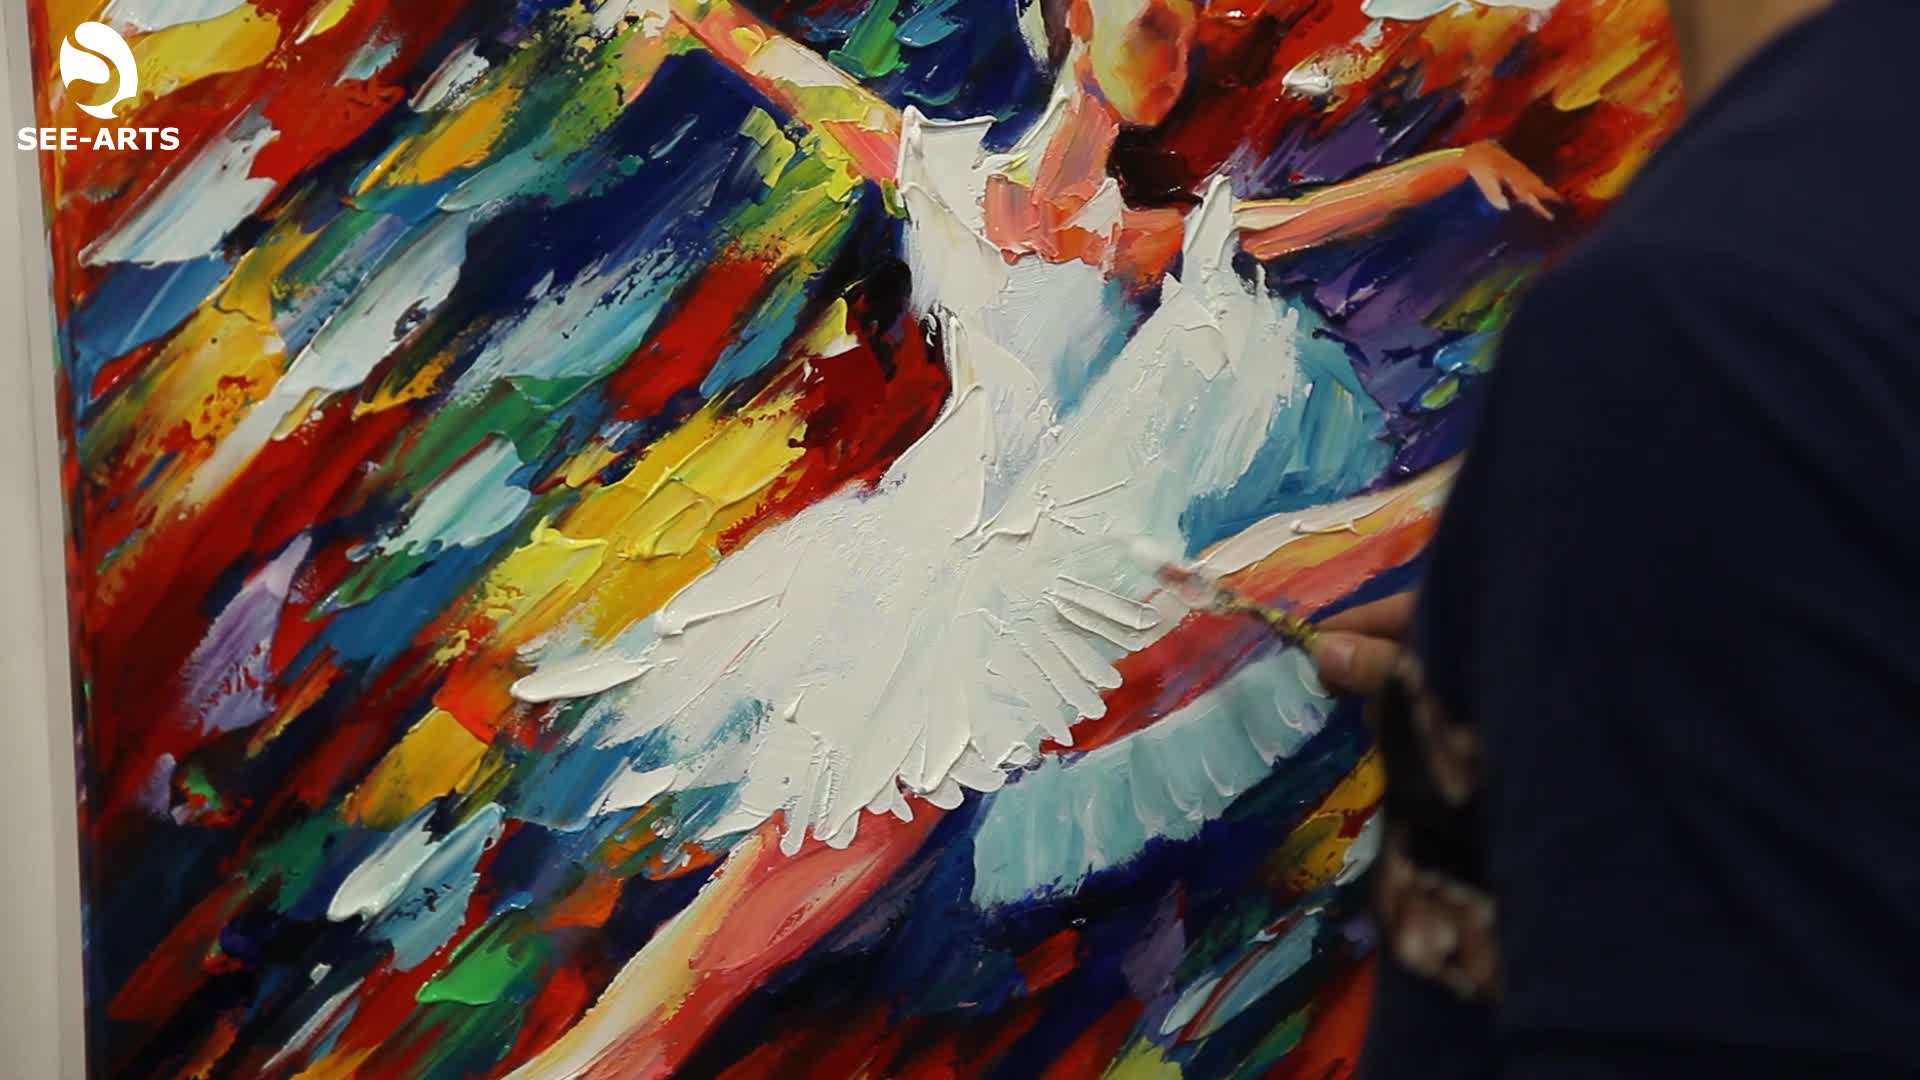 Dancing girl canvas abstract Portrait knife impressionism contemporary abstract oil painting on canvas